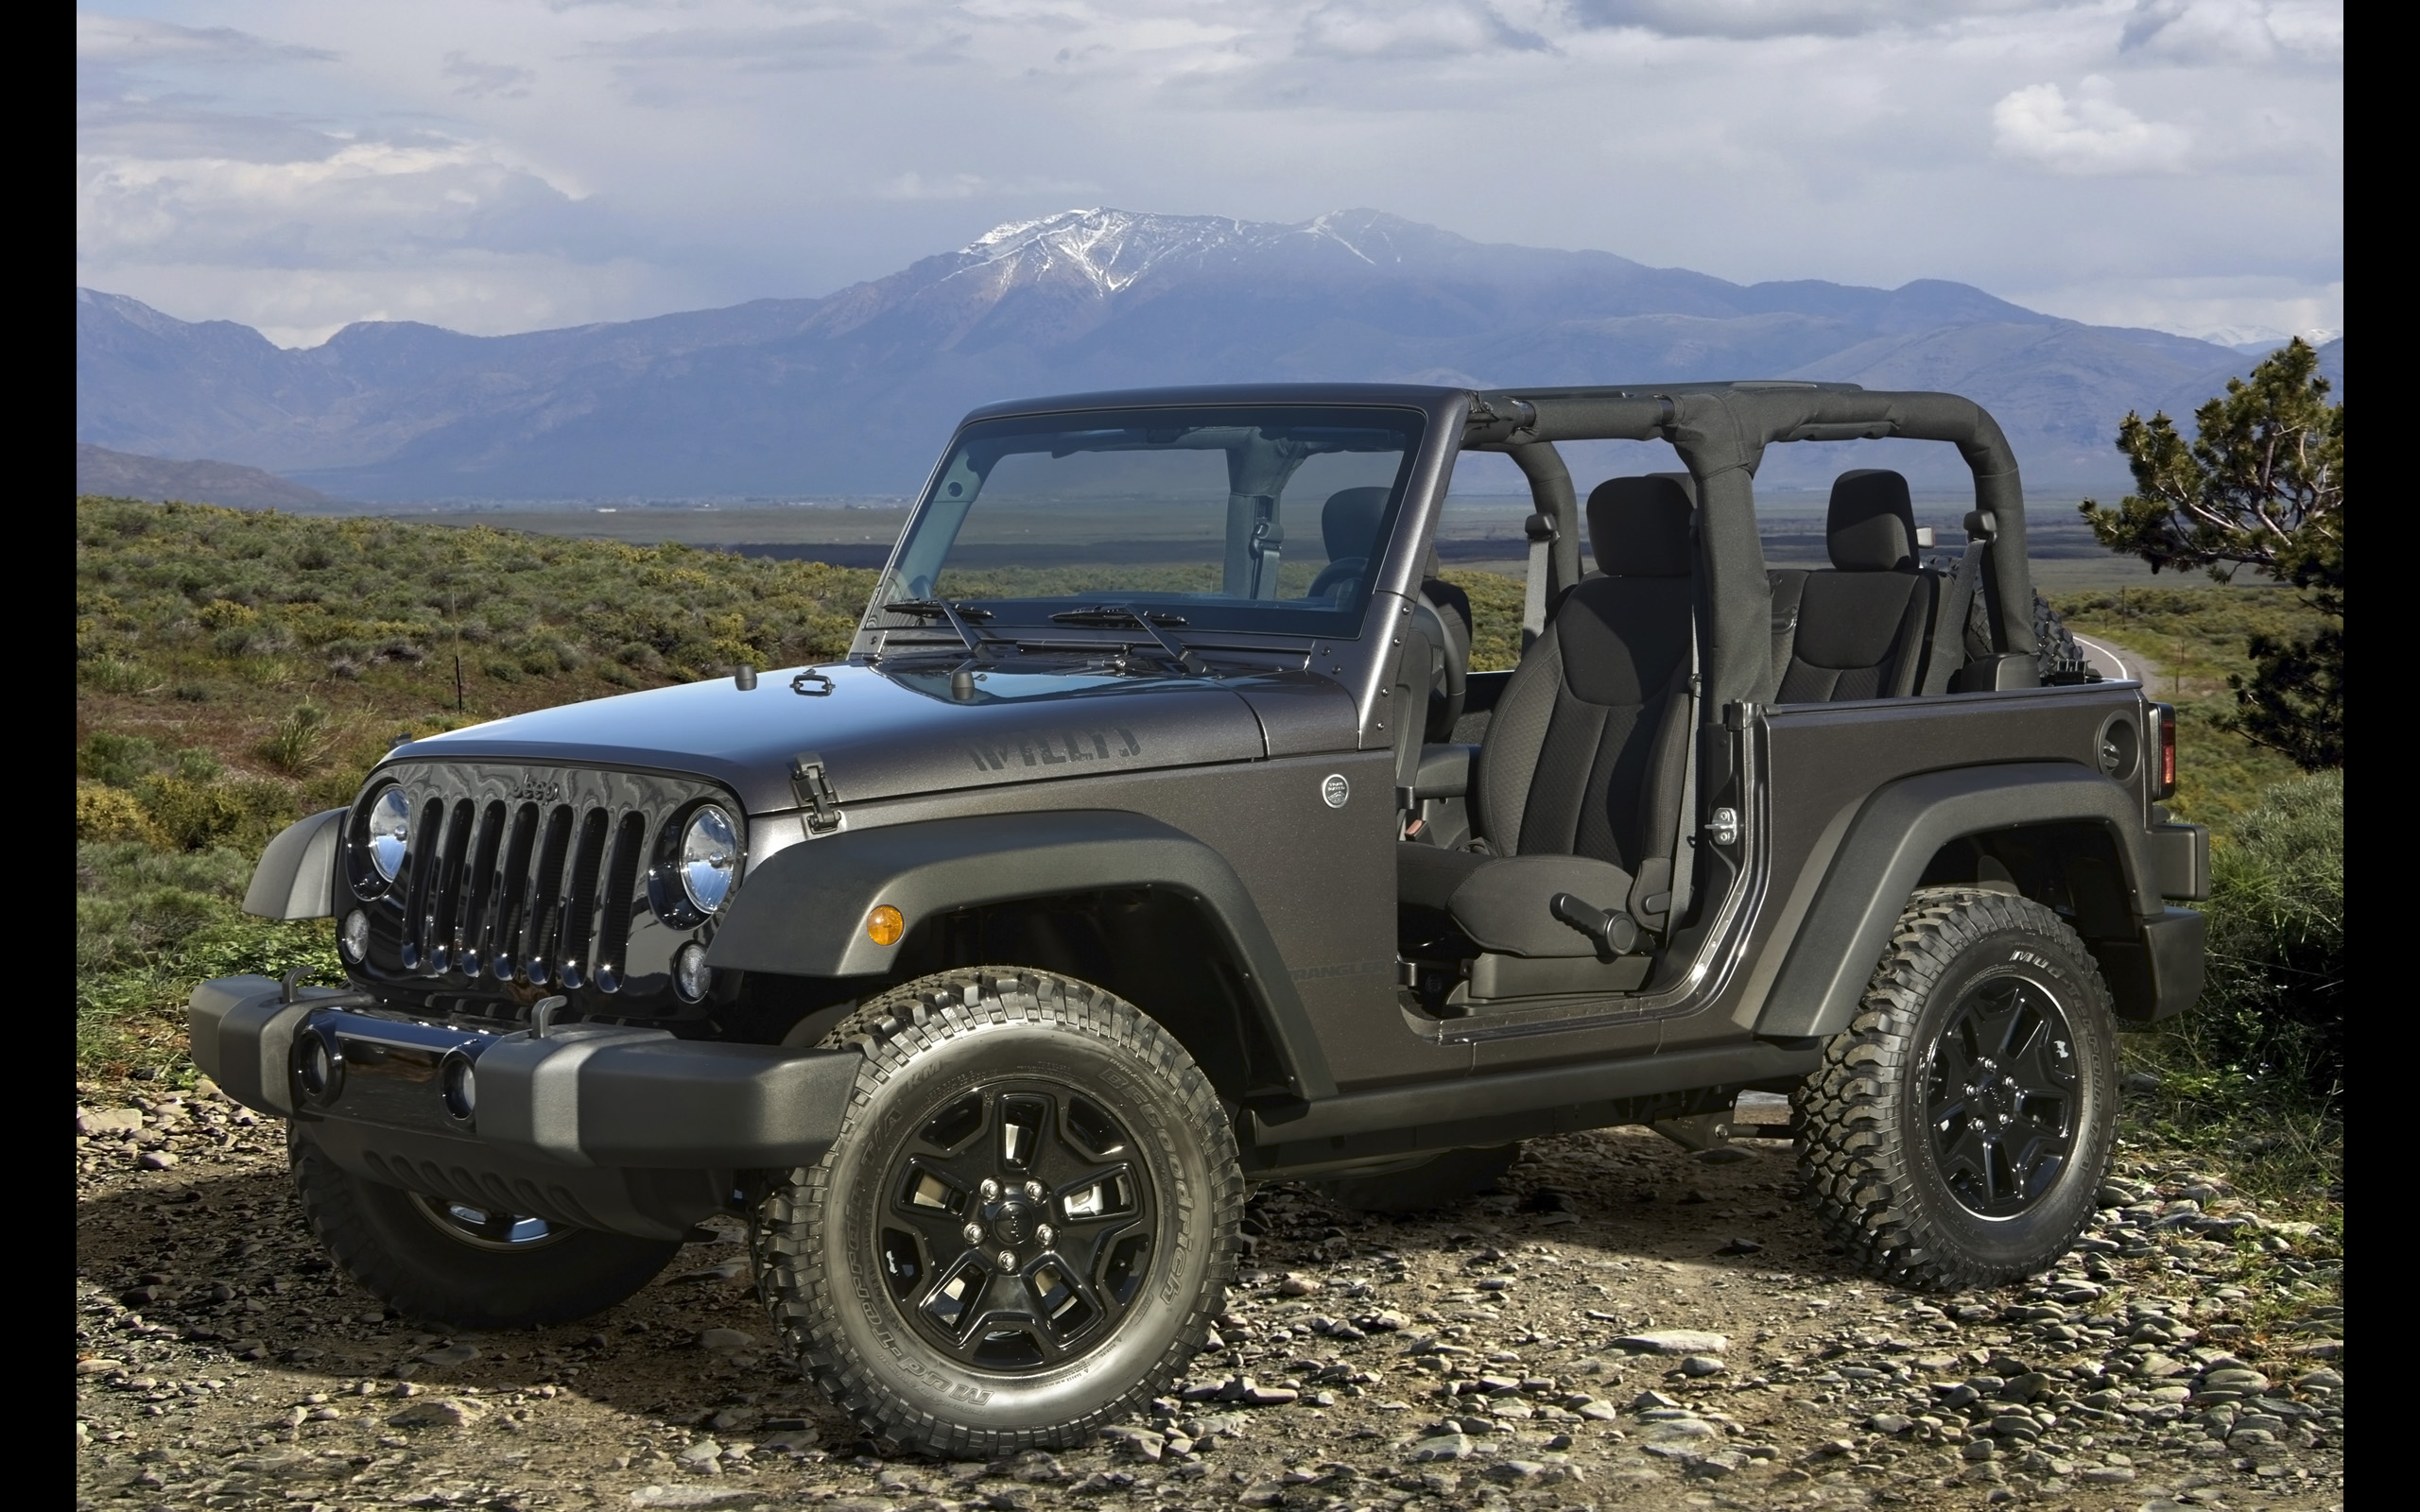 2014 jeep wrangler willys wheeler 4x4 g wallpaper 2560x1600 178260 wallpaperup. Black Bedroom Furniture Sets. Home Design Ideas